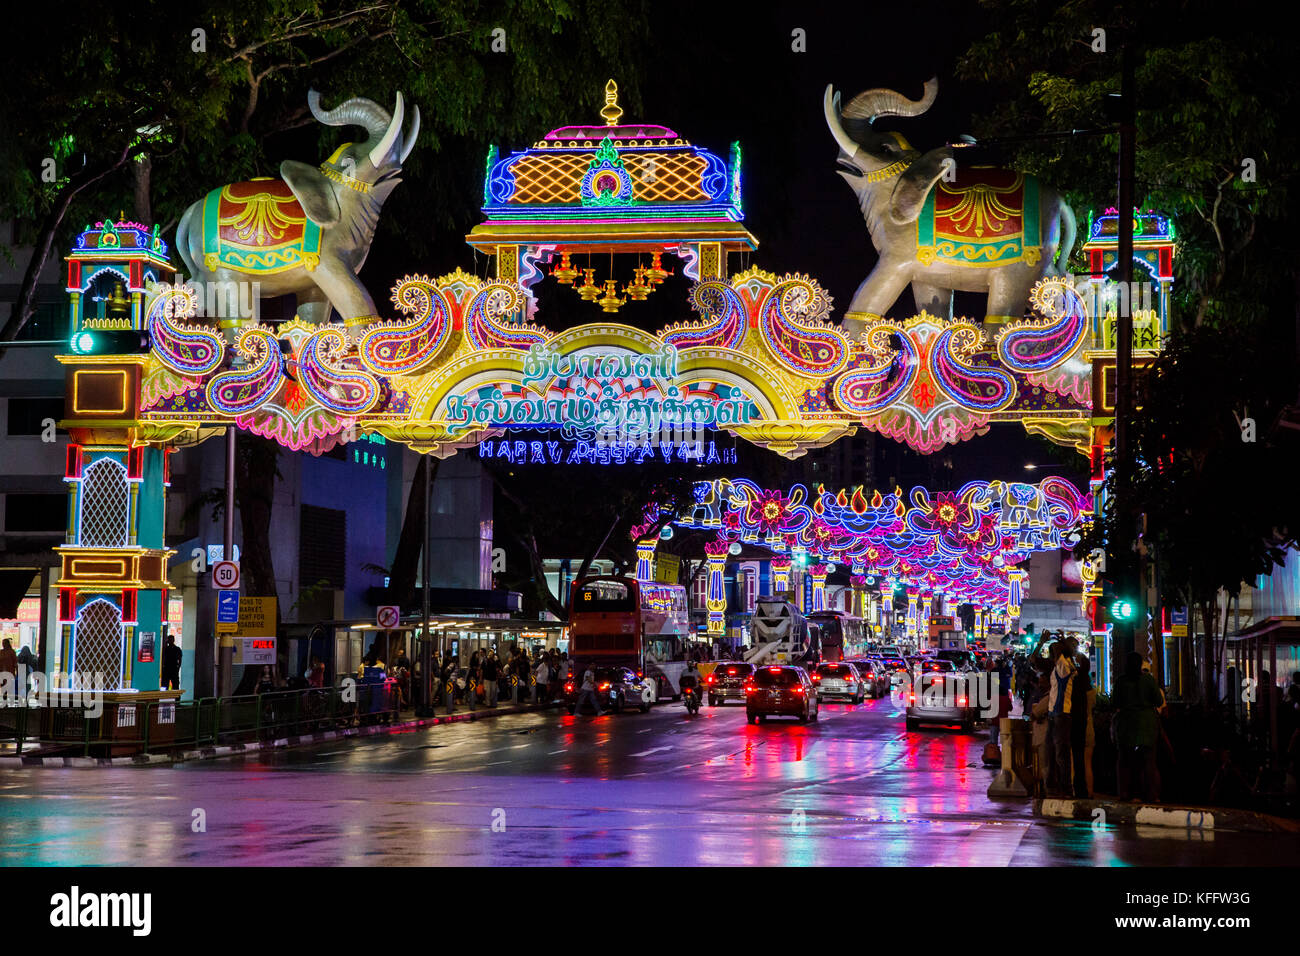 Deepavali Festival Singapore Stock Photos  for Deepavali 2017 Celebration  585eri